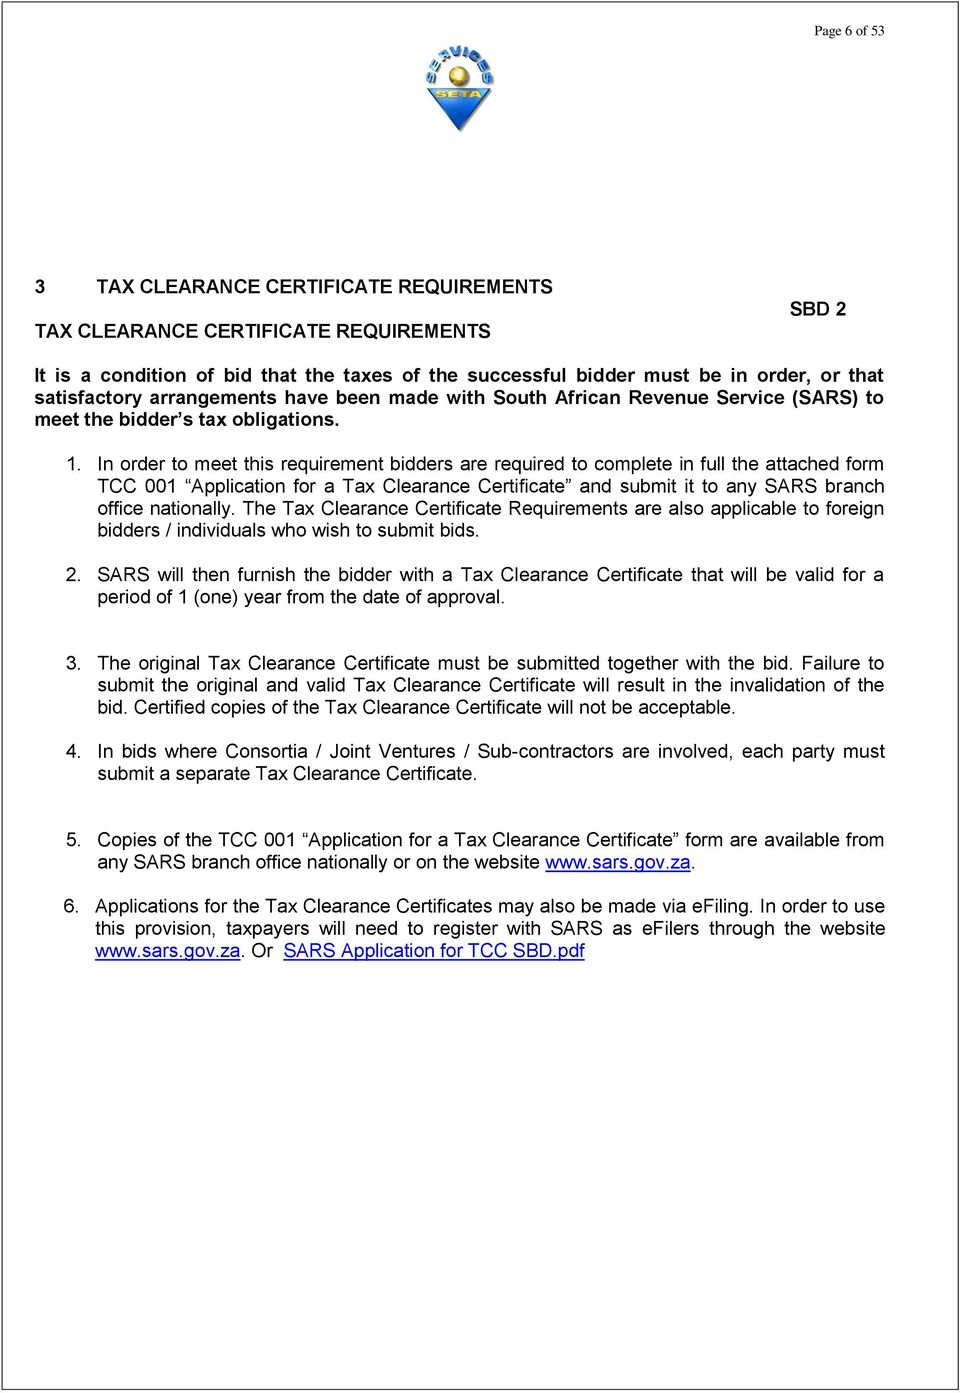 In order to meet this requirement bidders are required to complete in full the attached form TCC 001 Application for a Tax Clearance Certificate and submit it to any SARS branch office nationally.